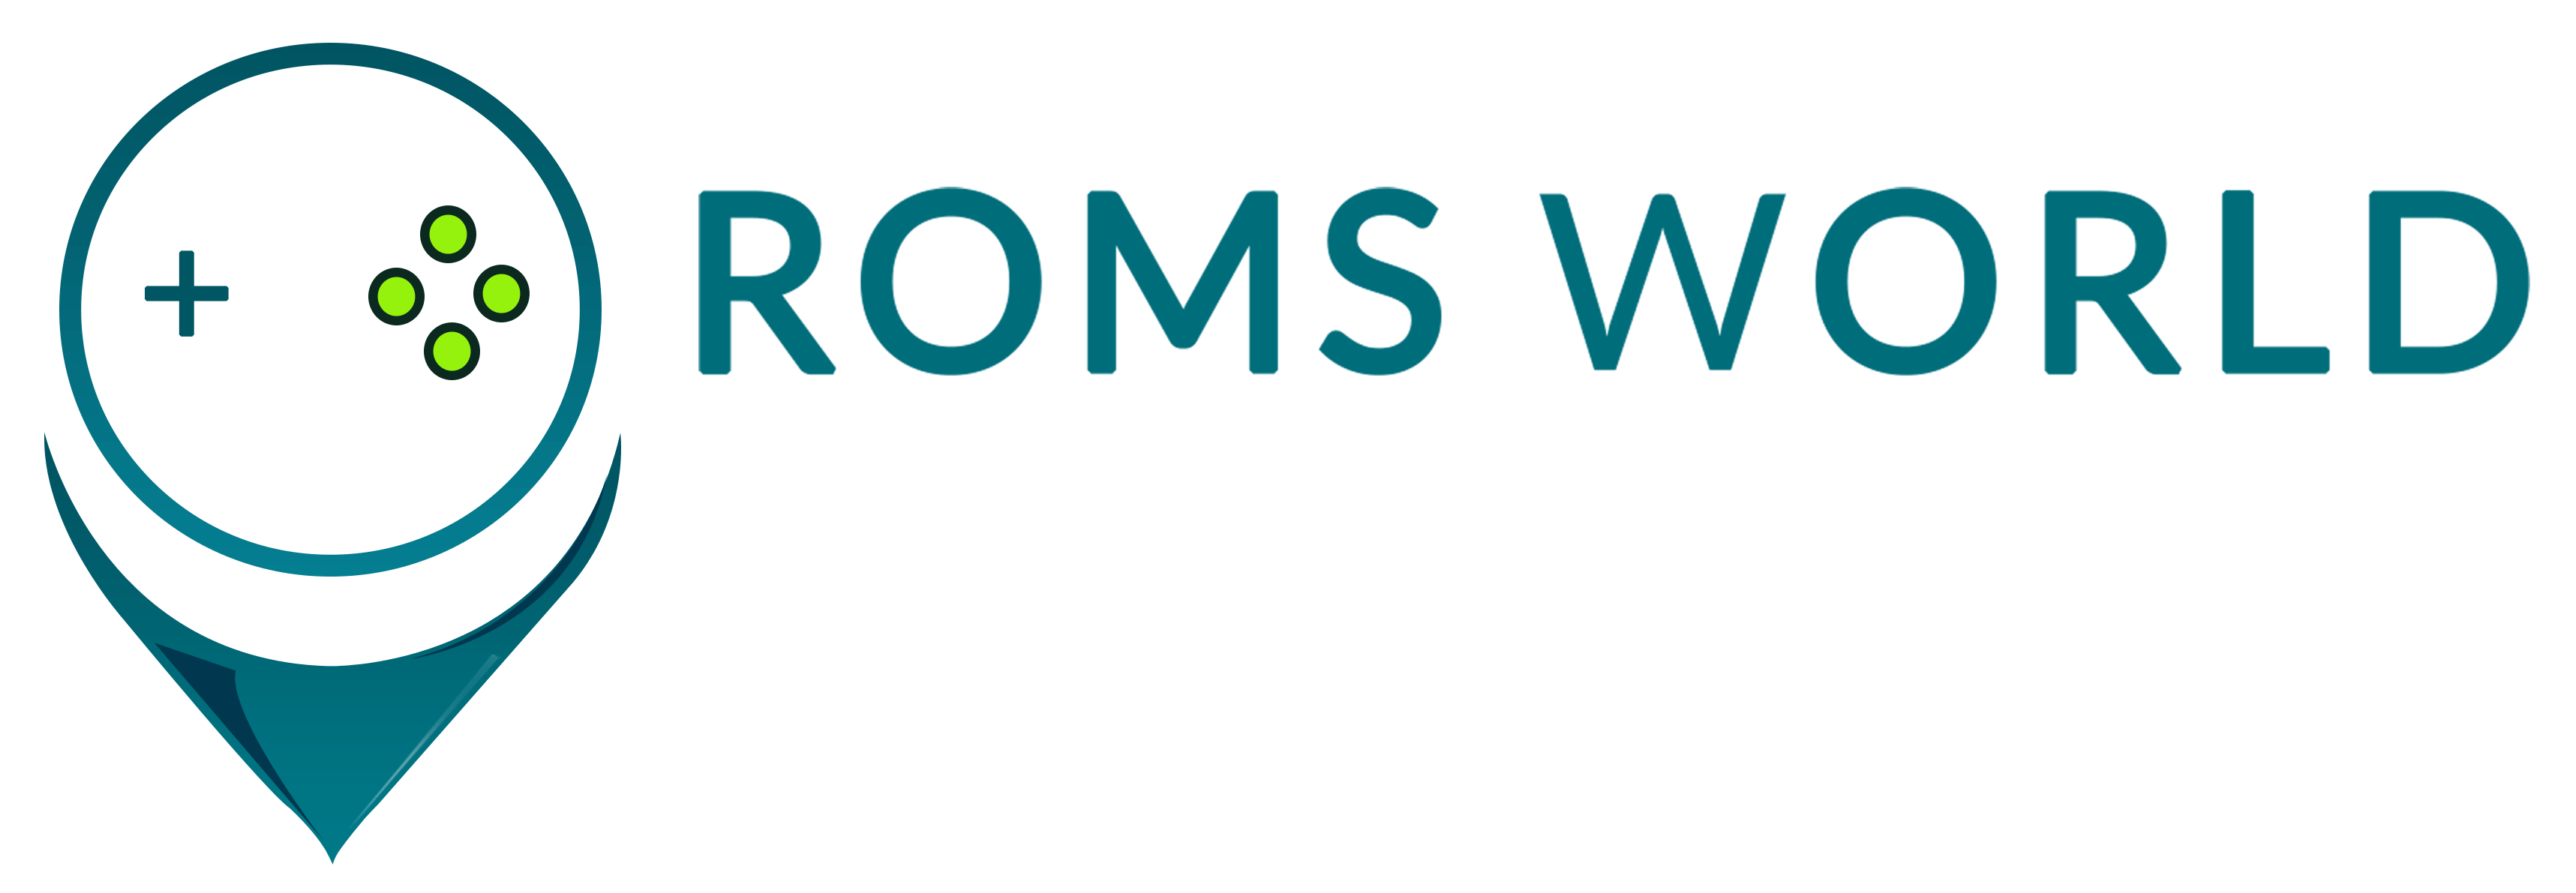 Get fav Online | Roms World